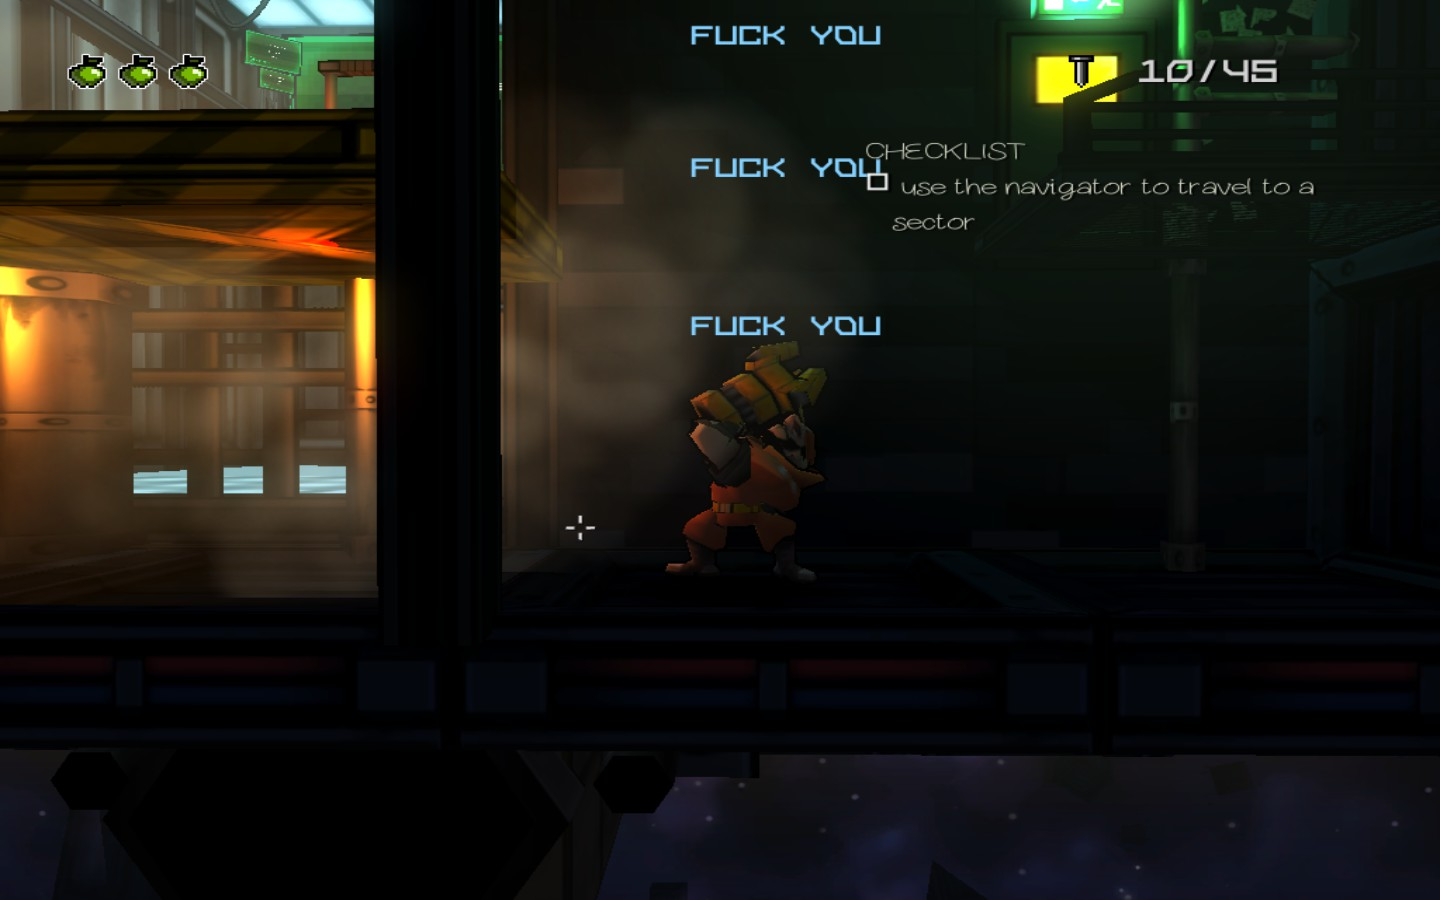 Games where you can fuck